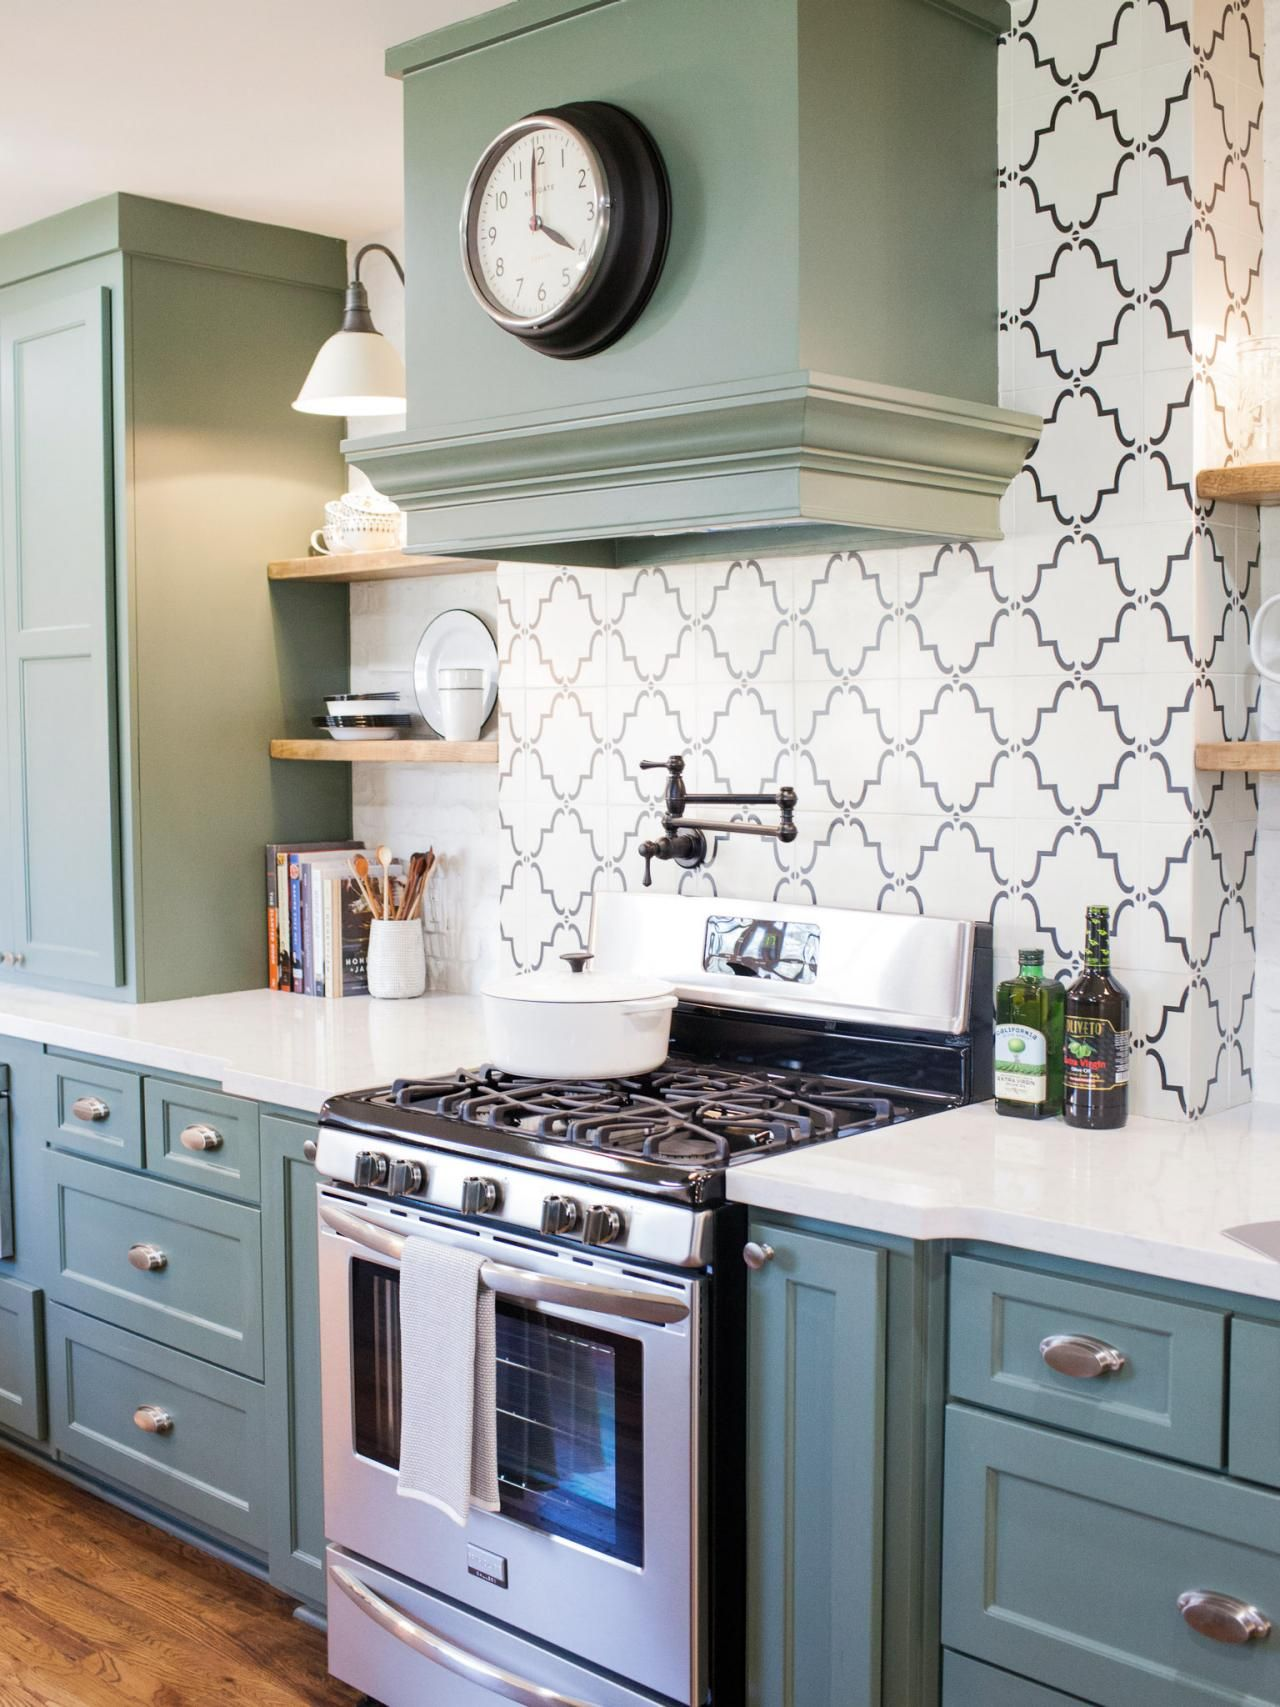 Fixer upper kitchen backsplash ideas - Fixer Upper Star Joanna Gaines Knows How To Add Life To A Home With Clever Container